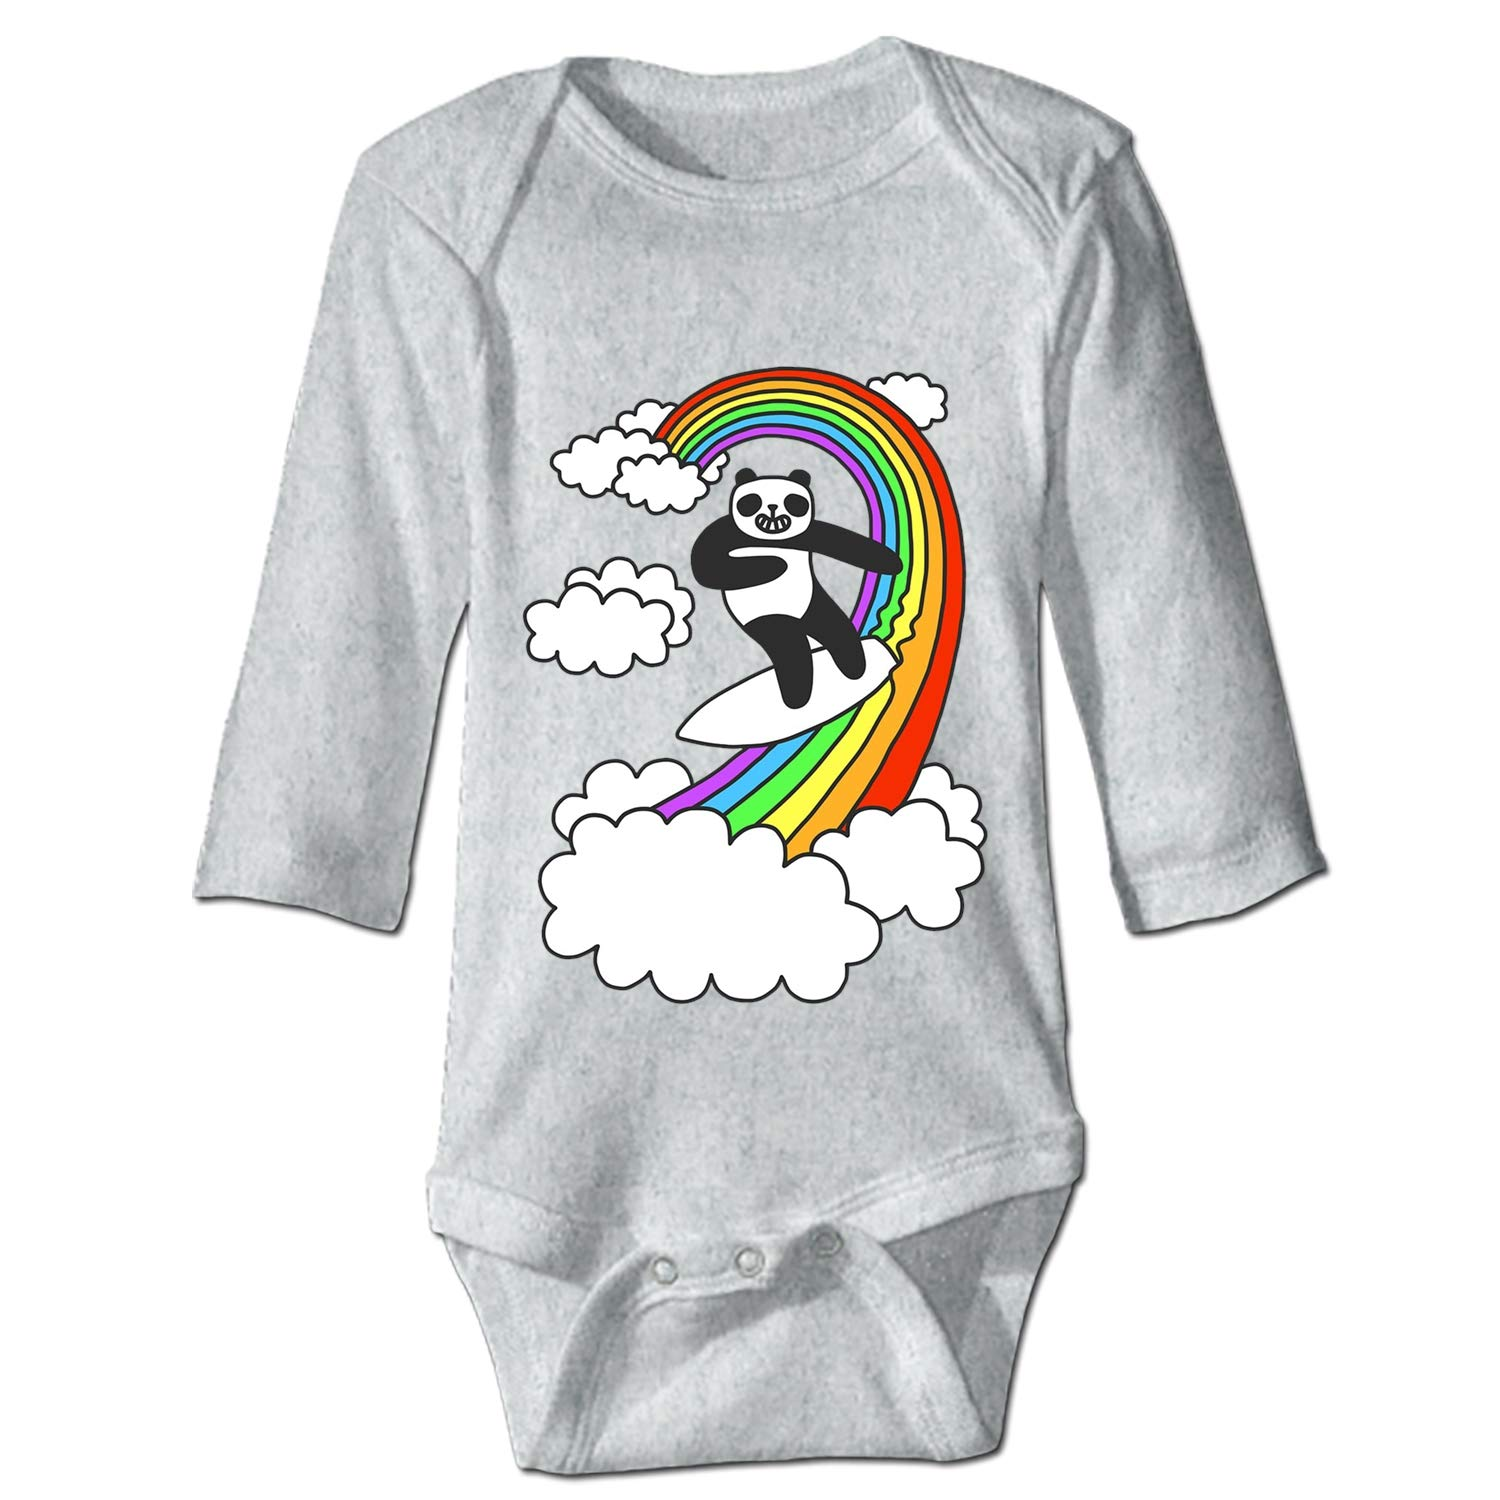 Rainbow Panda Funny Cute Novelty Infant One-Piece Baby Bodysuit